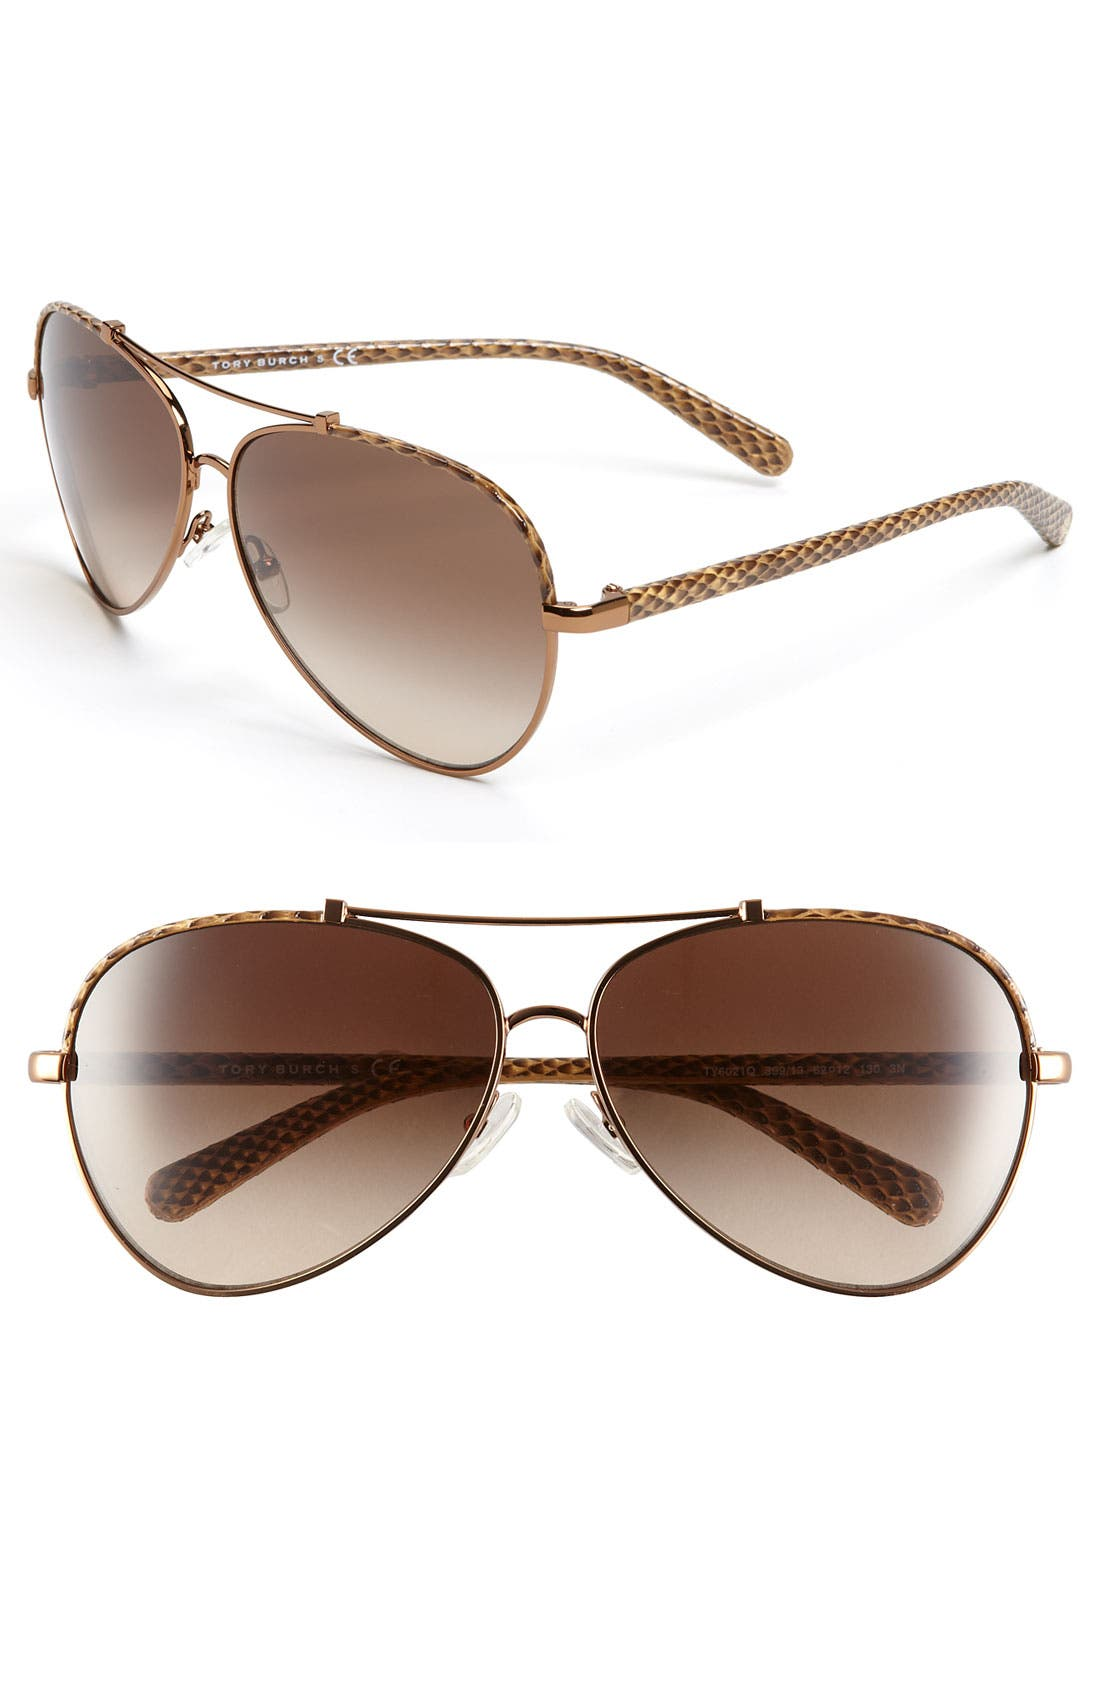 Alternate Image 1 Selected - Tory Burch 62mm Aviator Sunglasses